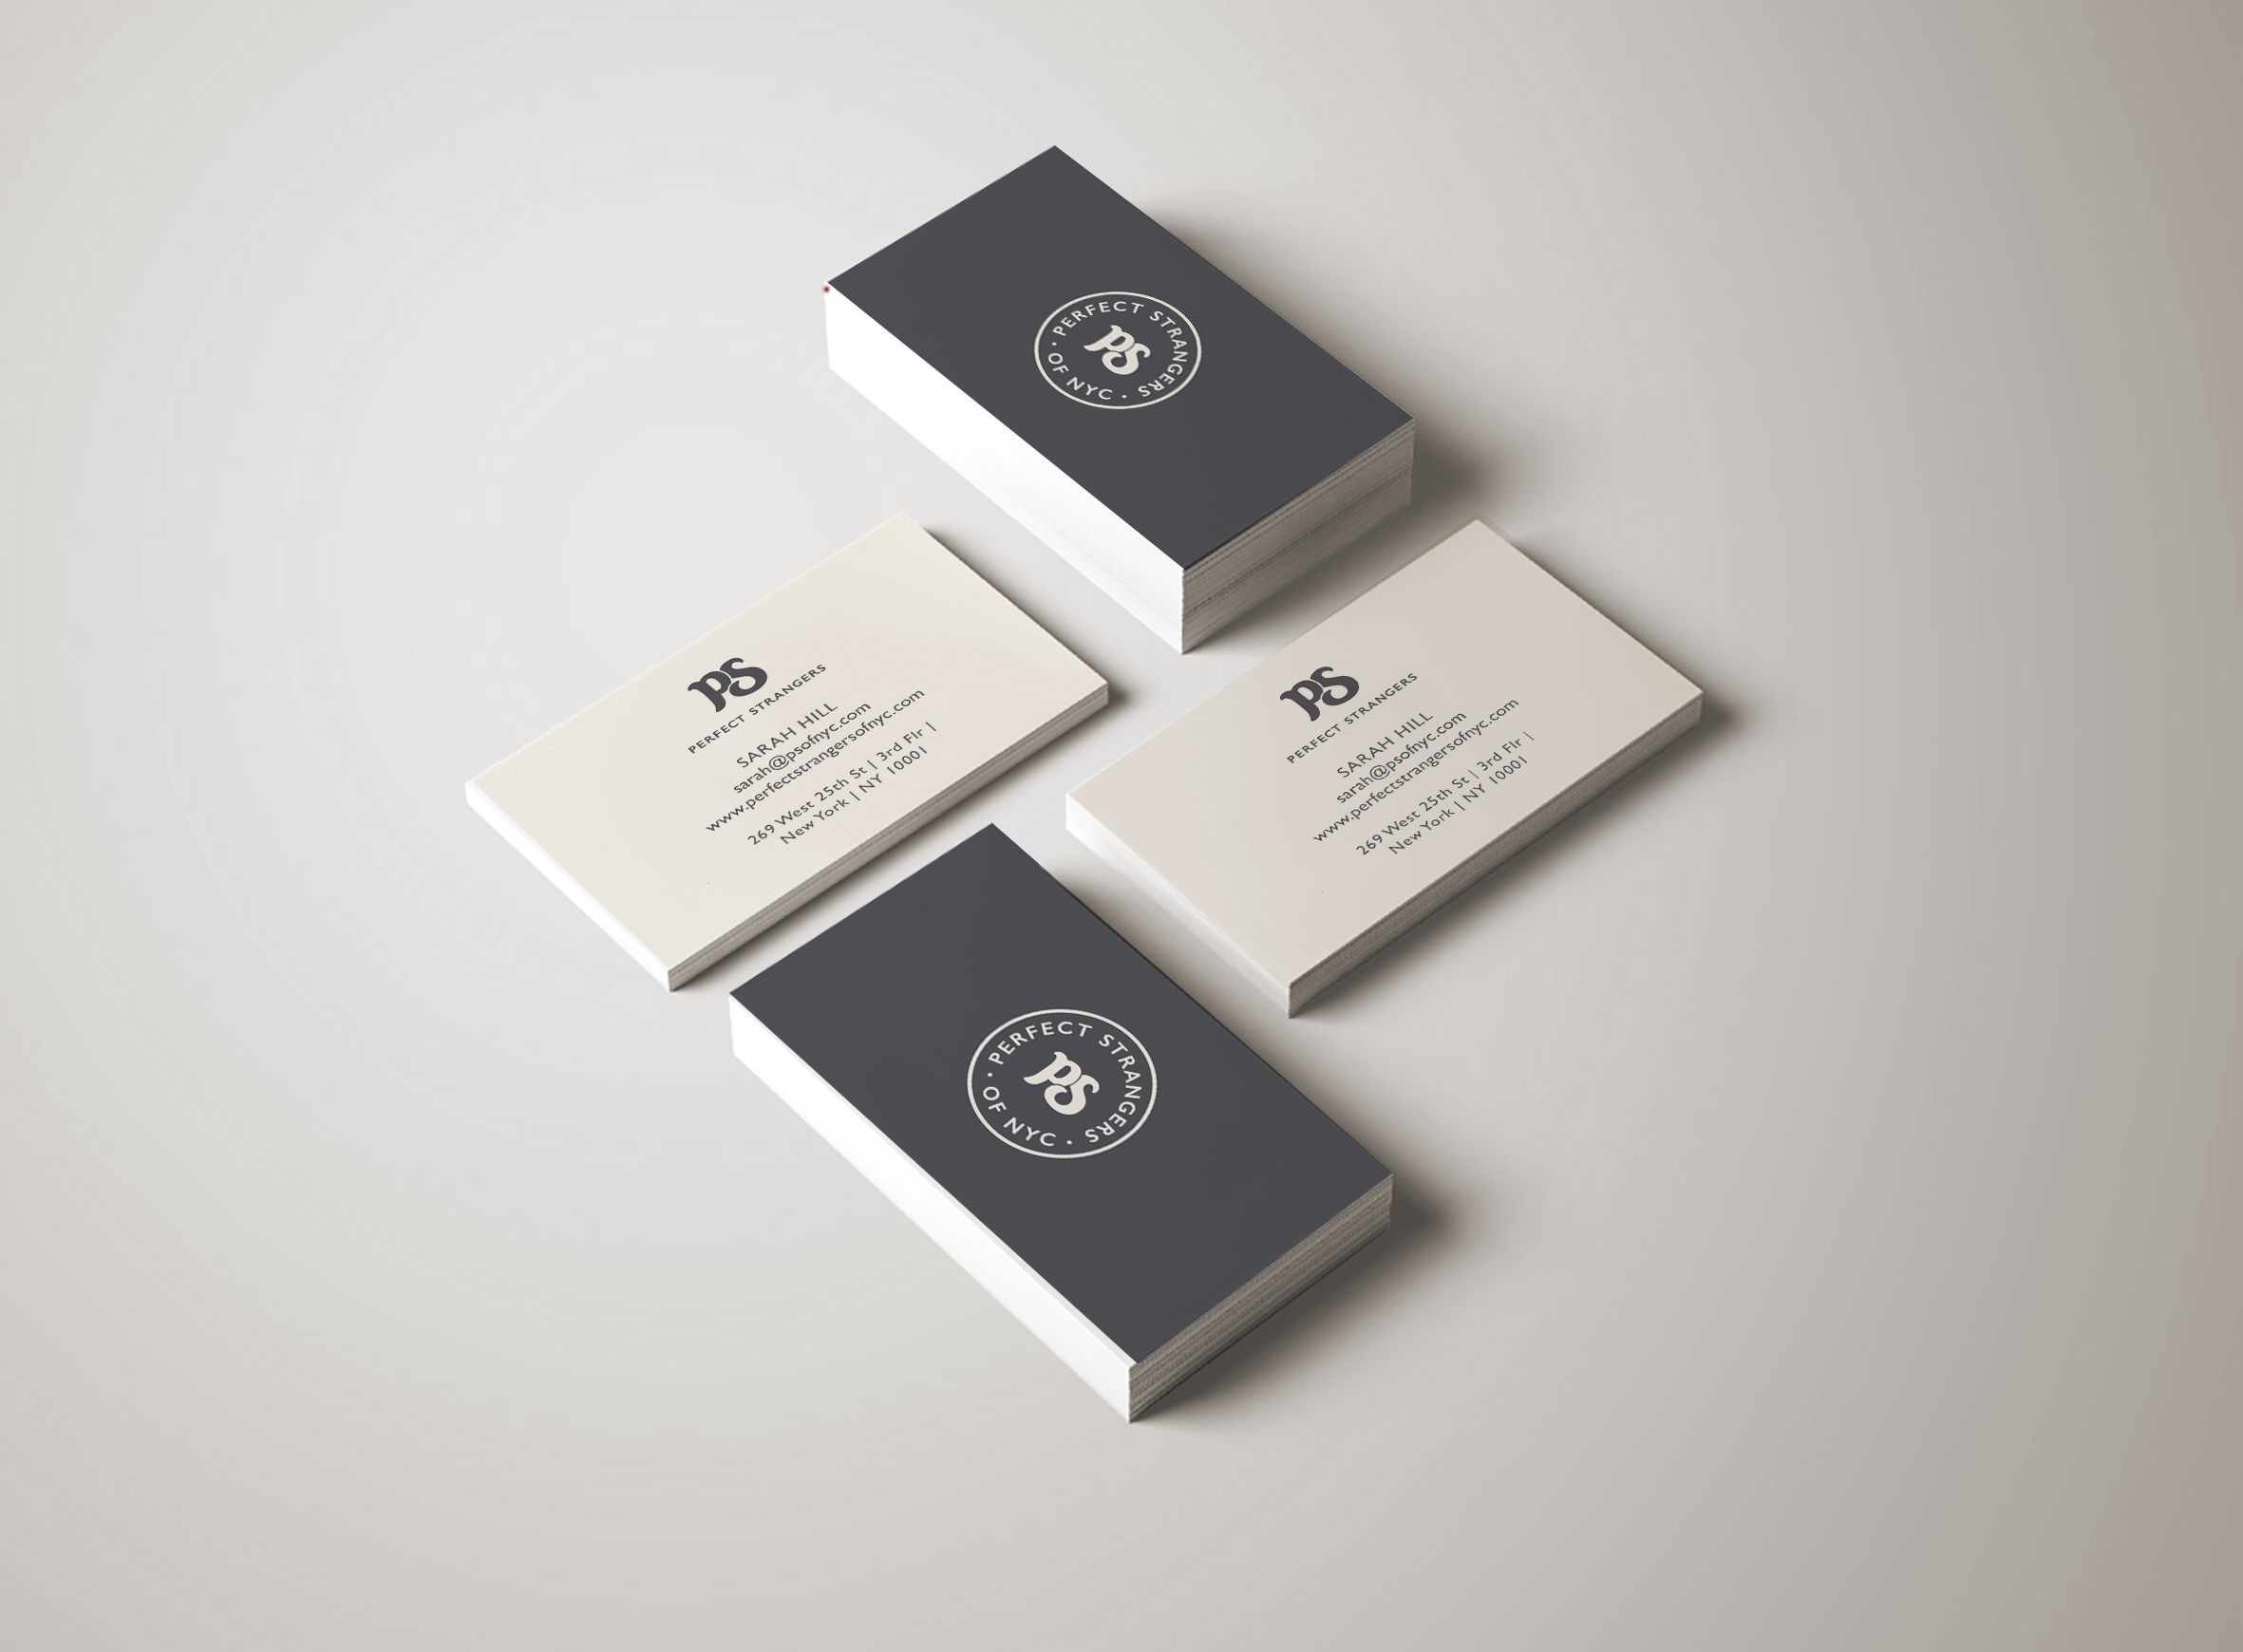 ps business cards_B.jpg